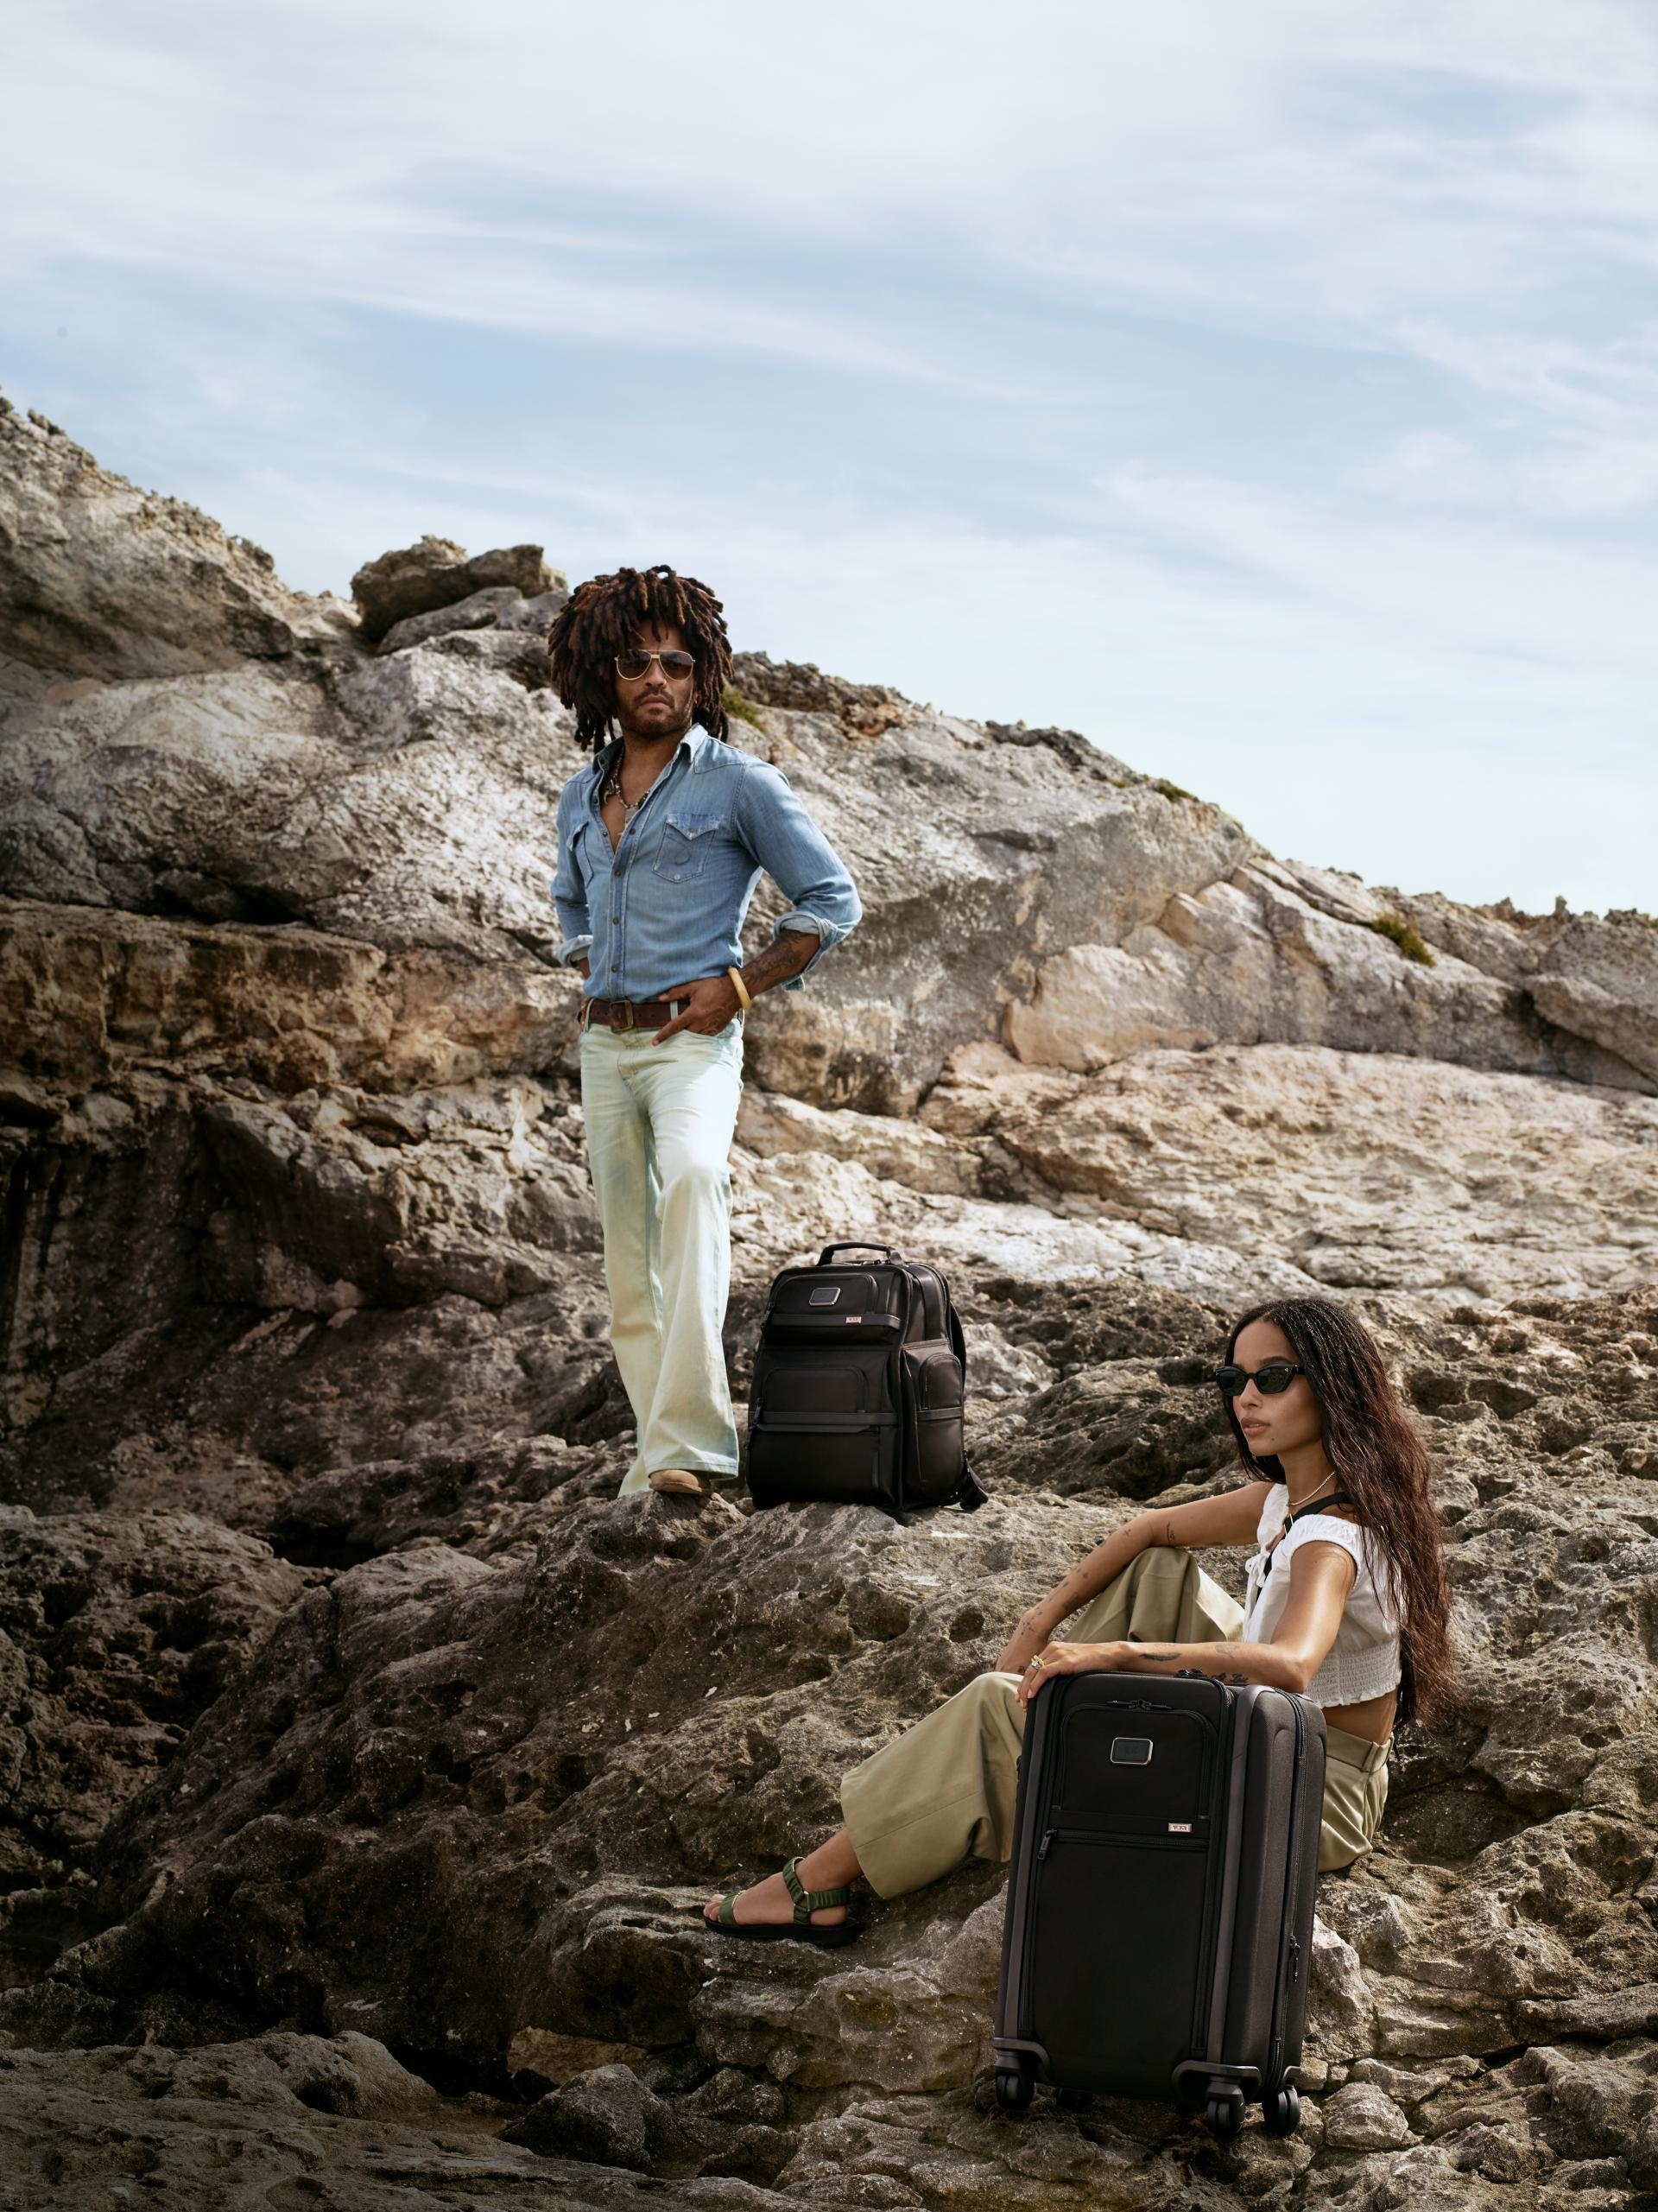 Zoë Kravtiz poses with her father, Lenny Kravitz, in images from TUMI's new campaign.